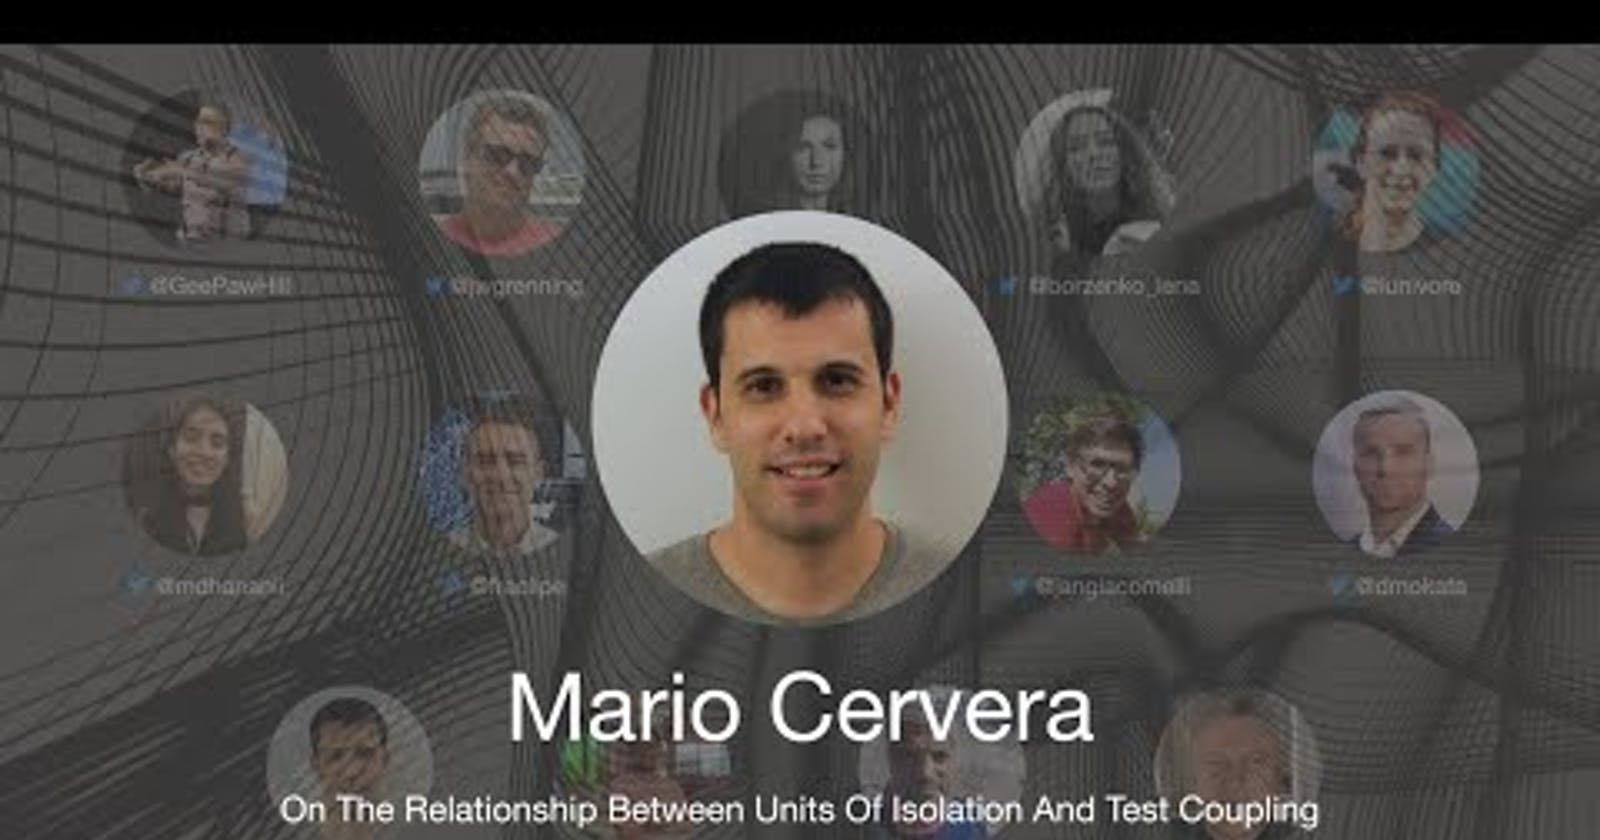 TDD Conference 2021 - On The Relationship Between Units Of Isolation And Test Coupling - Mario Cervera